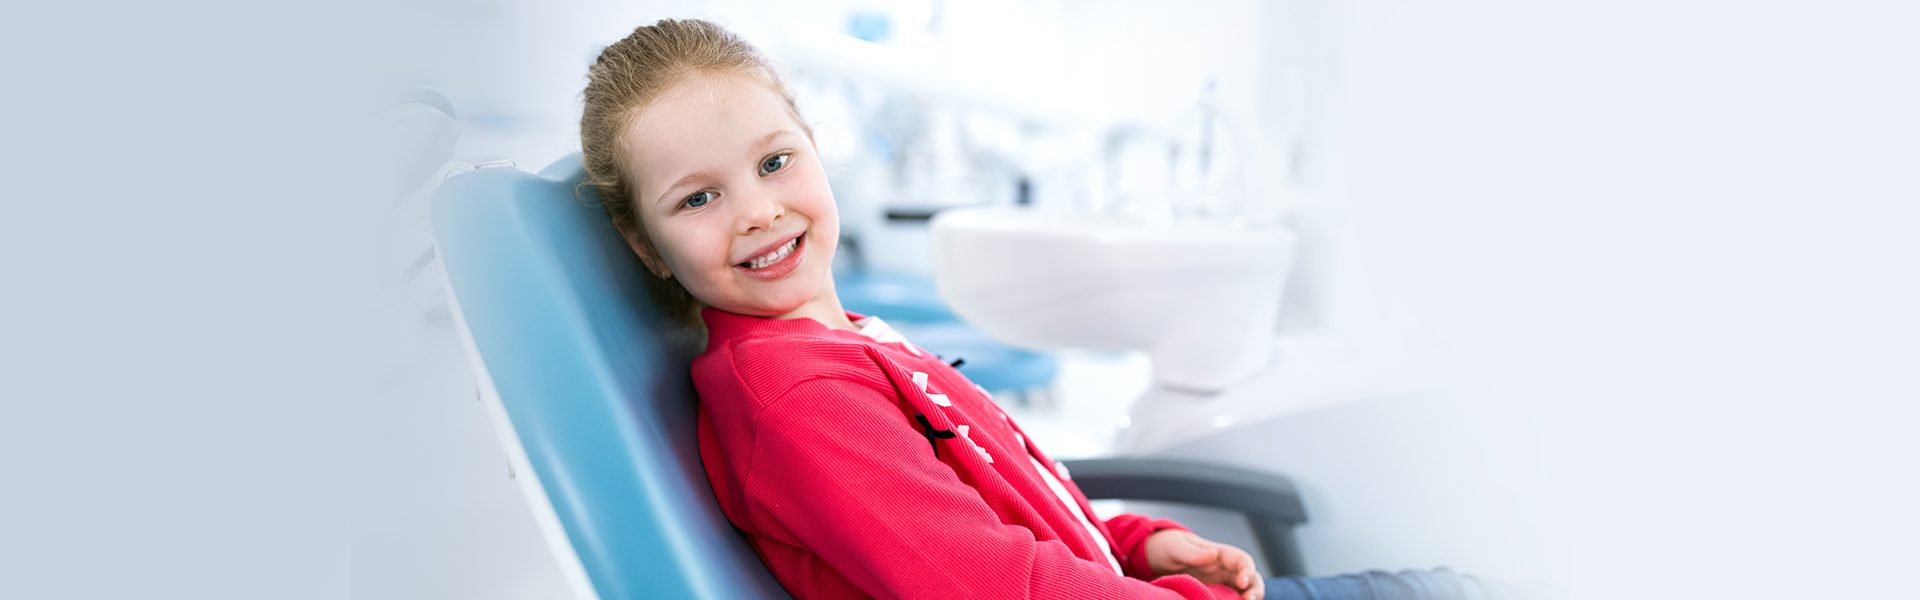 Reasons and Importance of Dental Exams and Cleanings